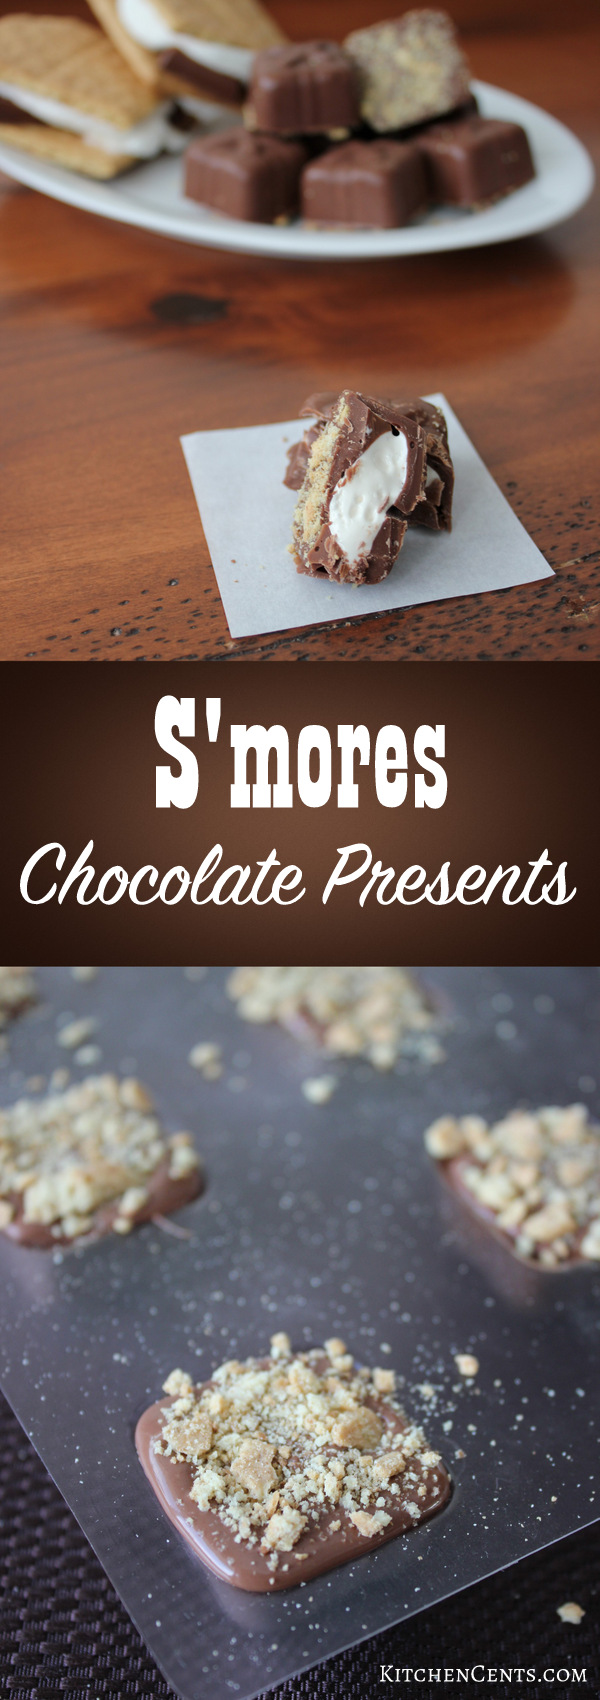 S'mores chocolates | KitchenCents.com